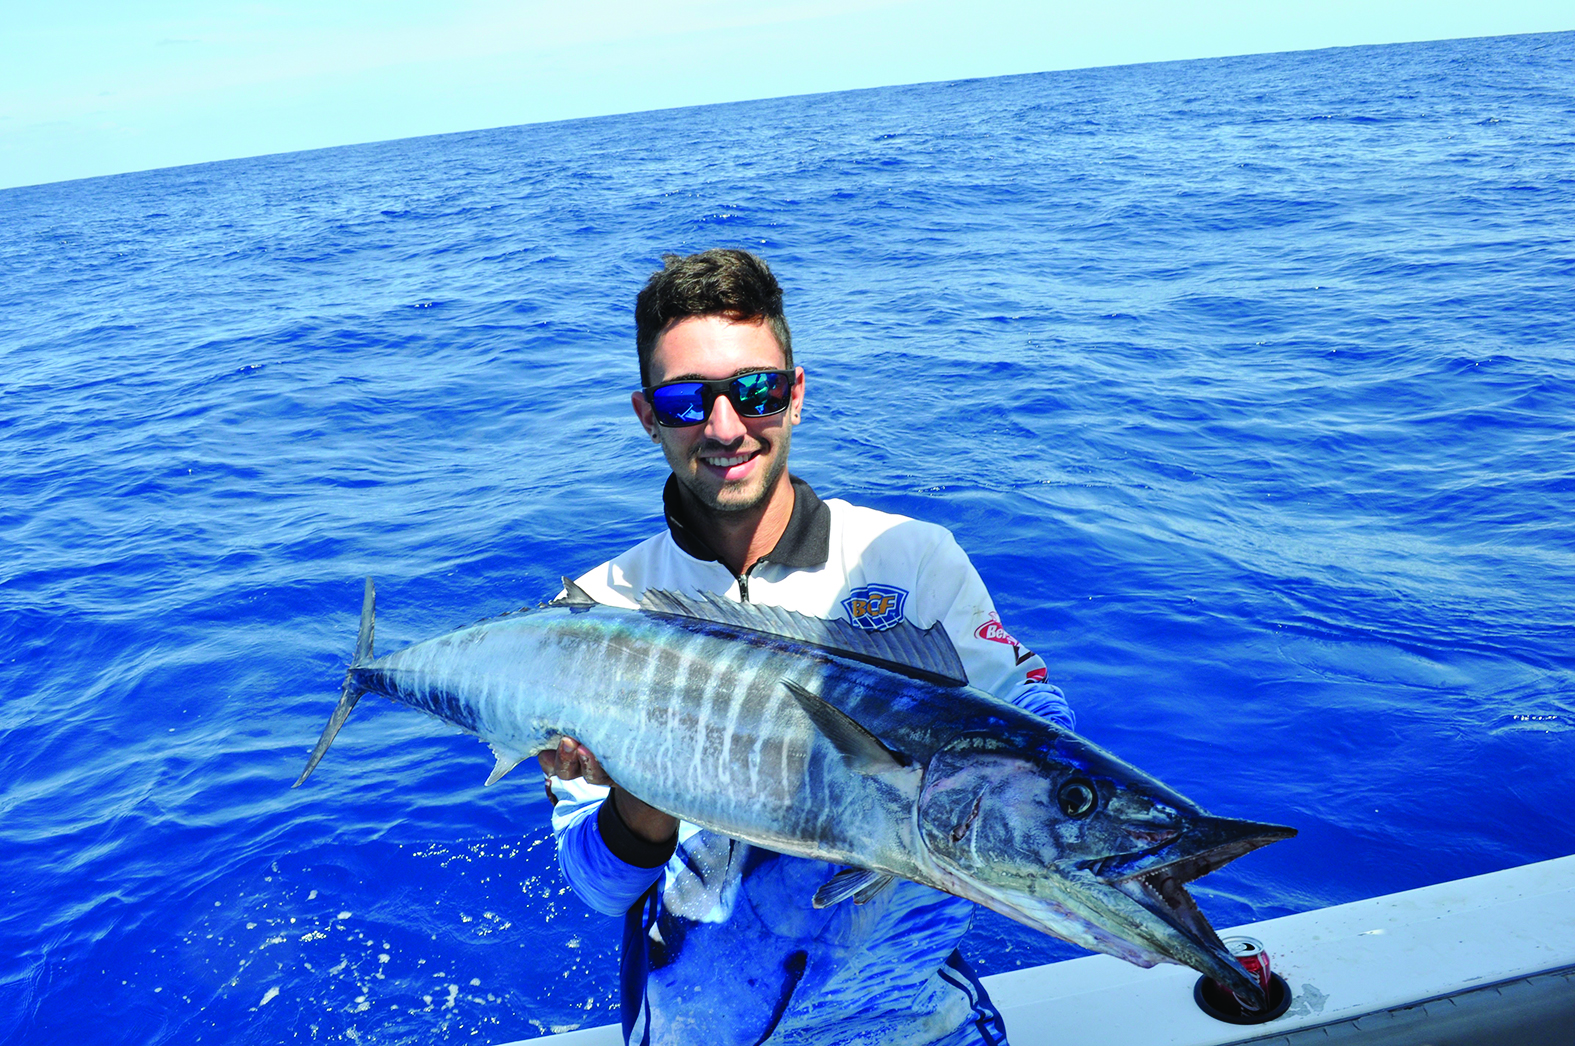 The author shows off a wahoo landed off Stradbroke Island by trolling hex heads at 12 knots.